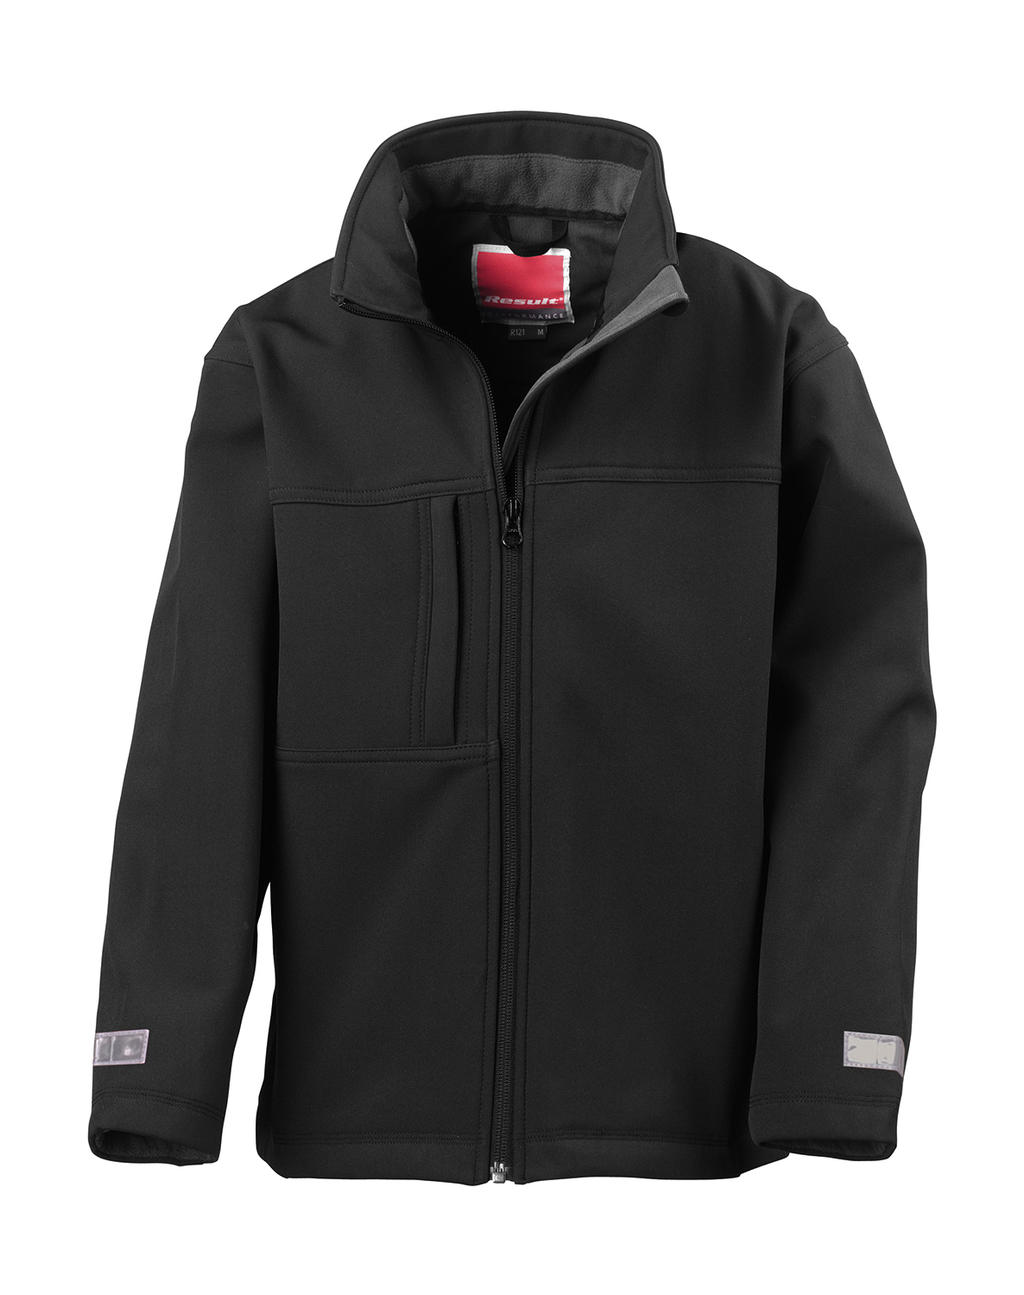 Junior/Youth Classic Soft Shell